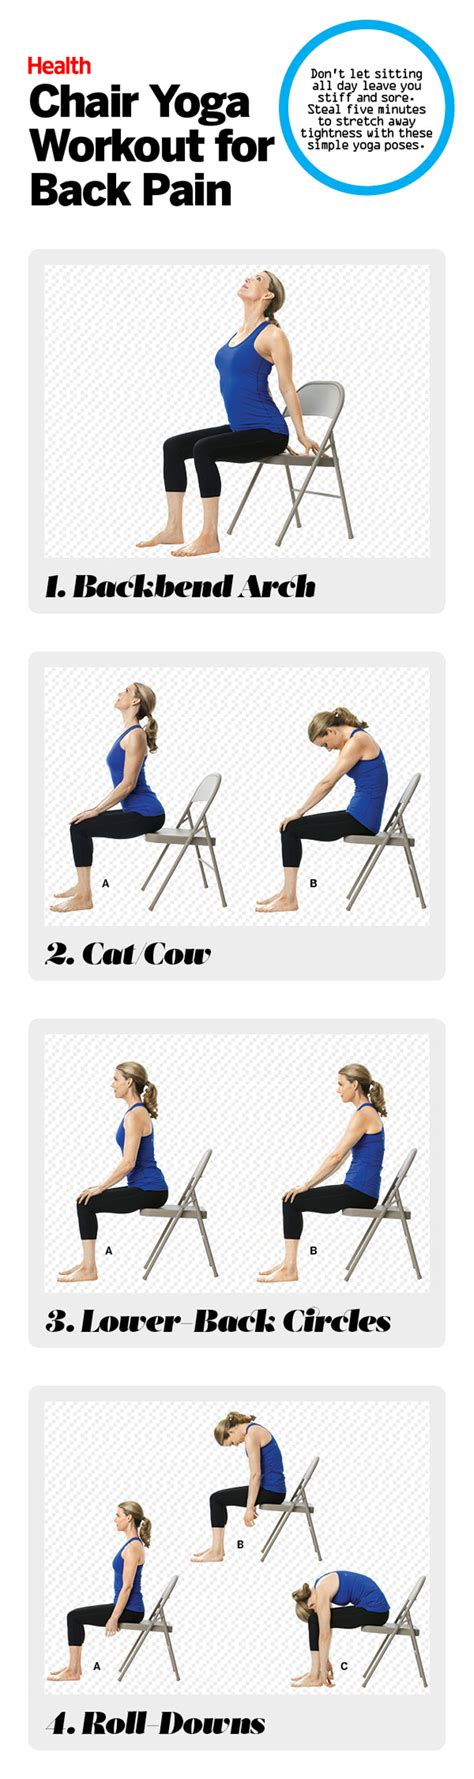 printable exercise routines for seniors the best chair yoga moves for back pain el paso back